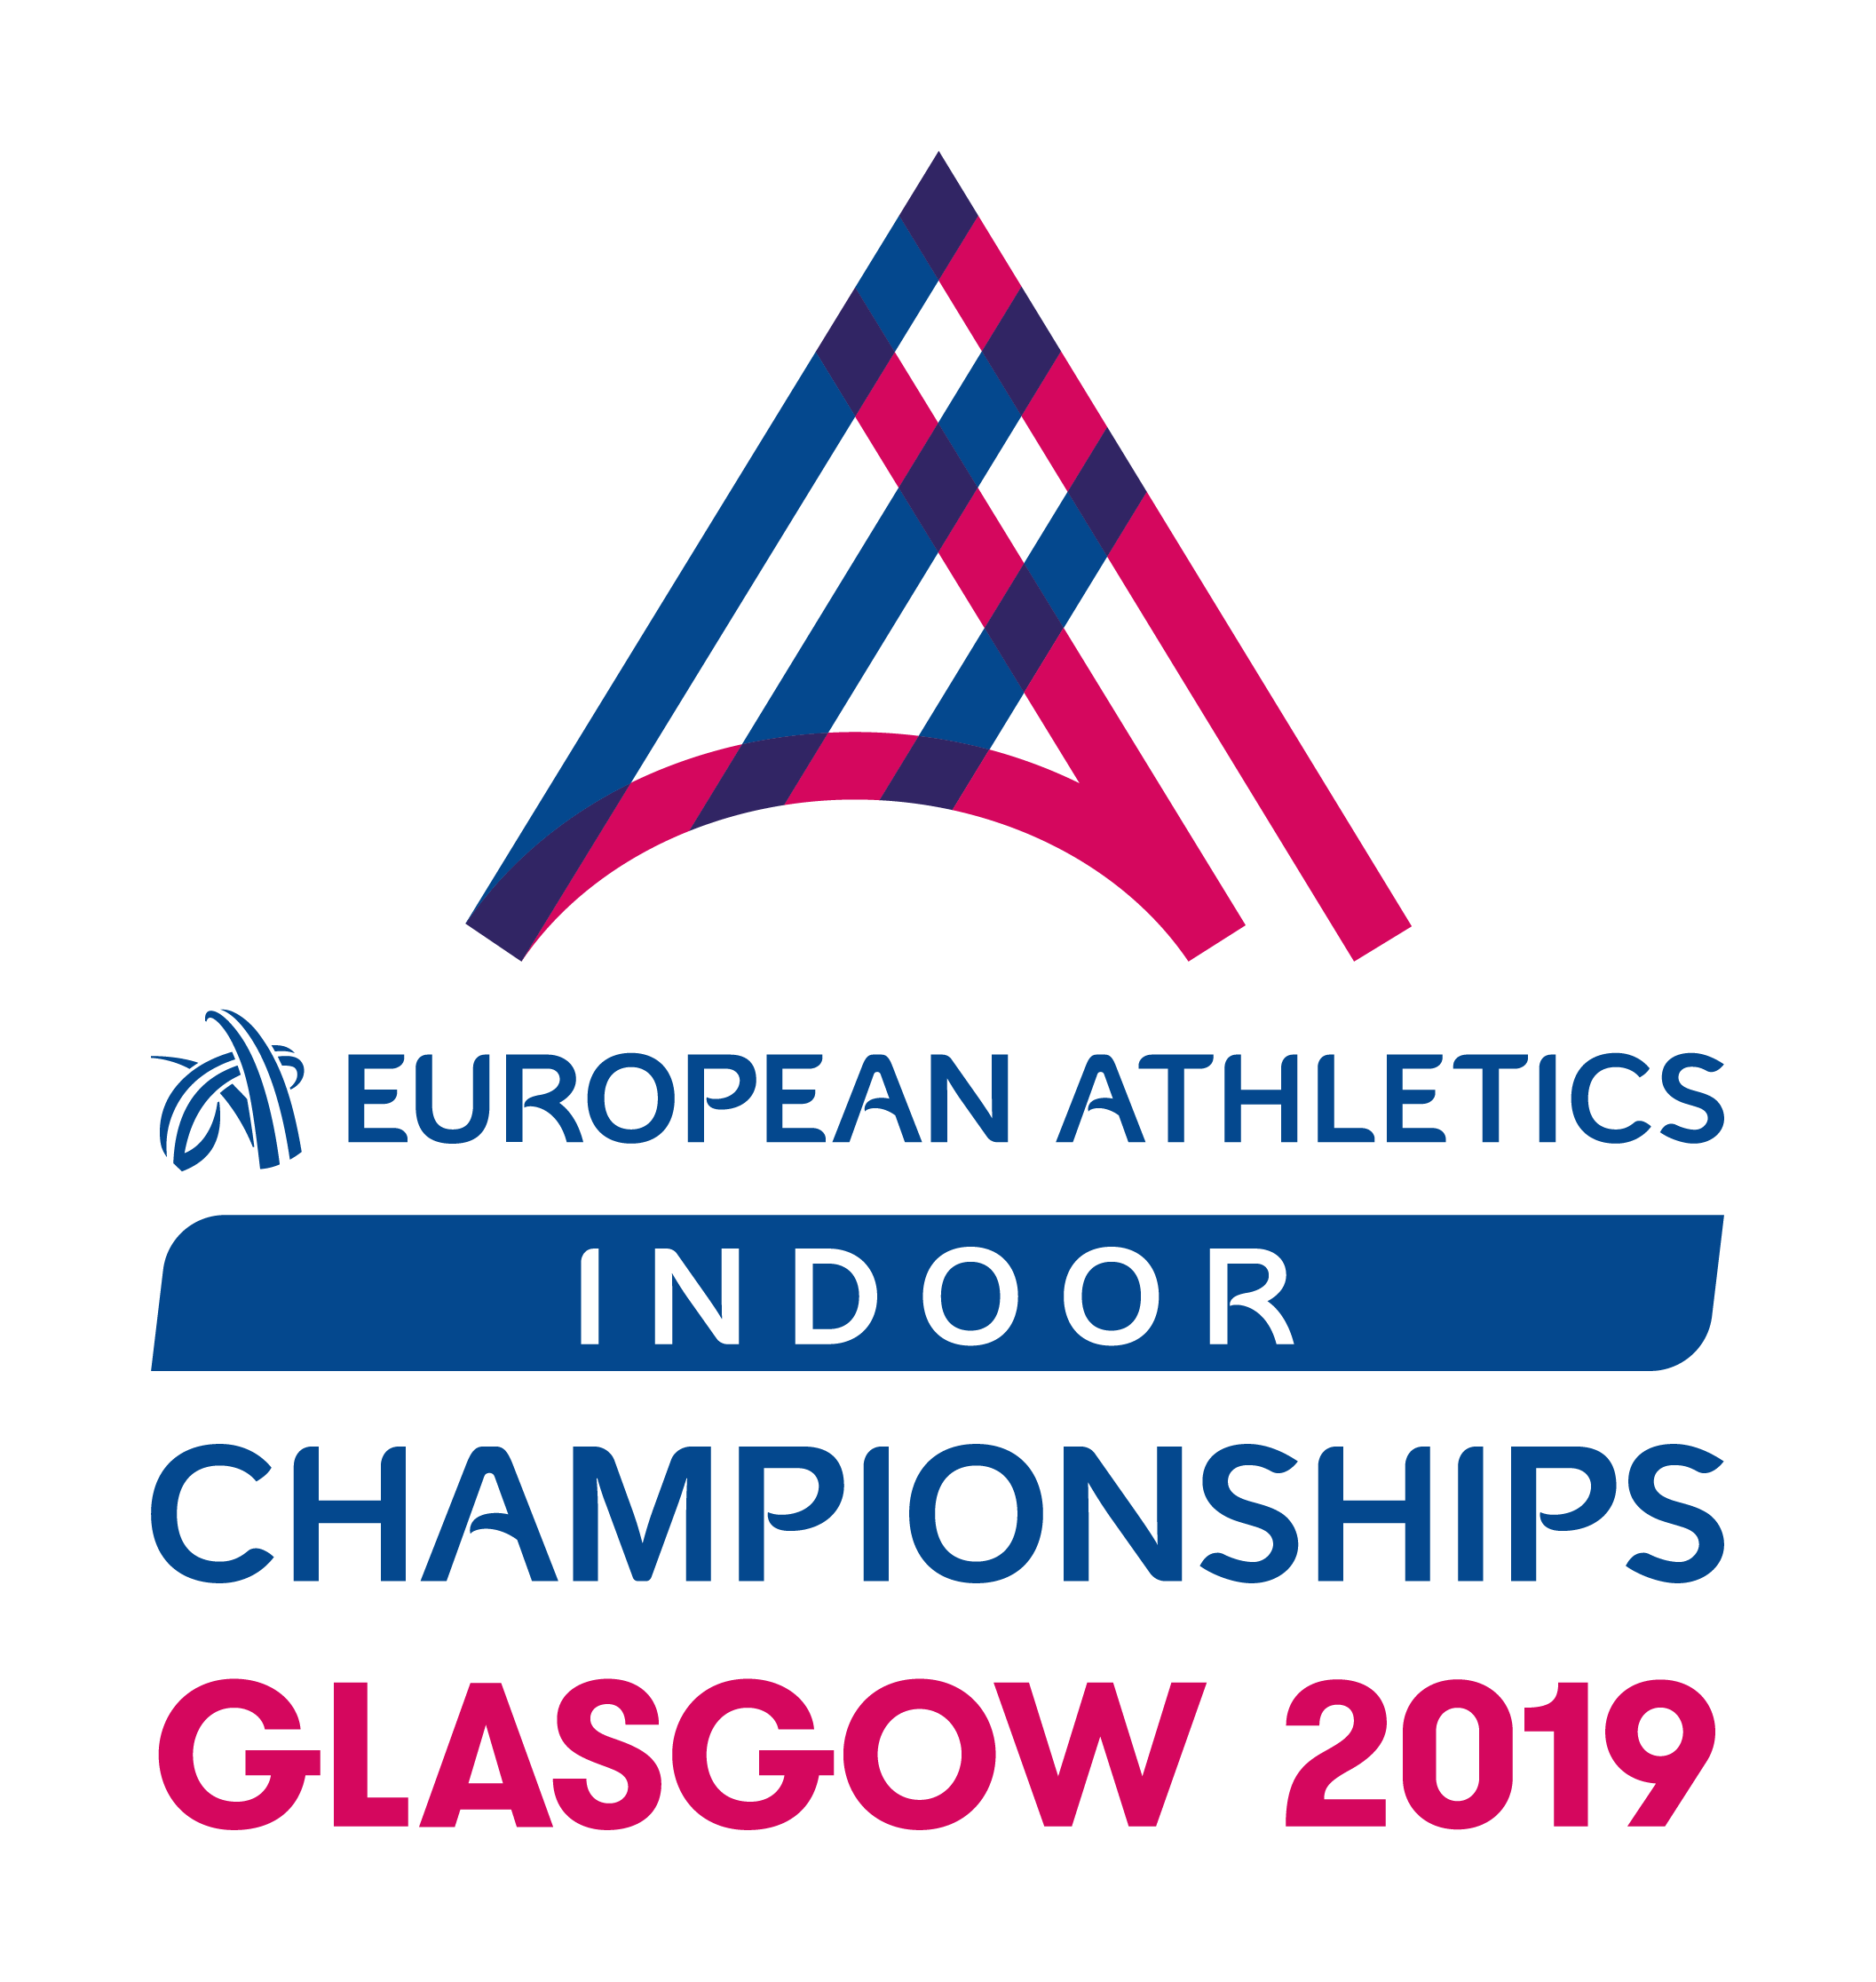 22c9ddcb9dca5  2019 GLASGOW 2019. ALL RIGHTS RESERVED. WEB DESIGN BY 5OR6.